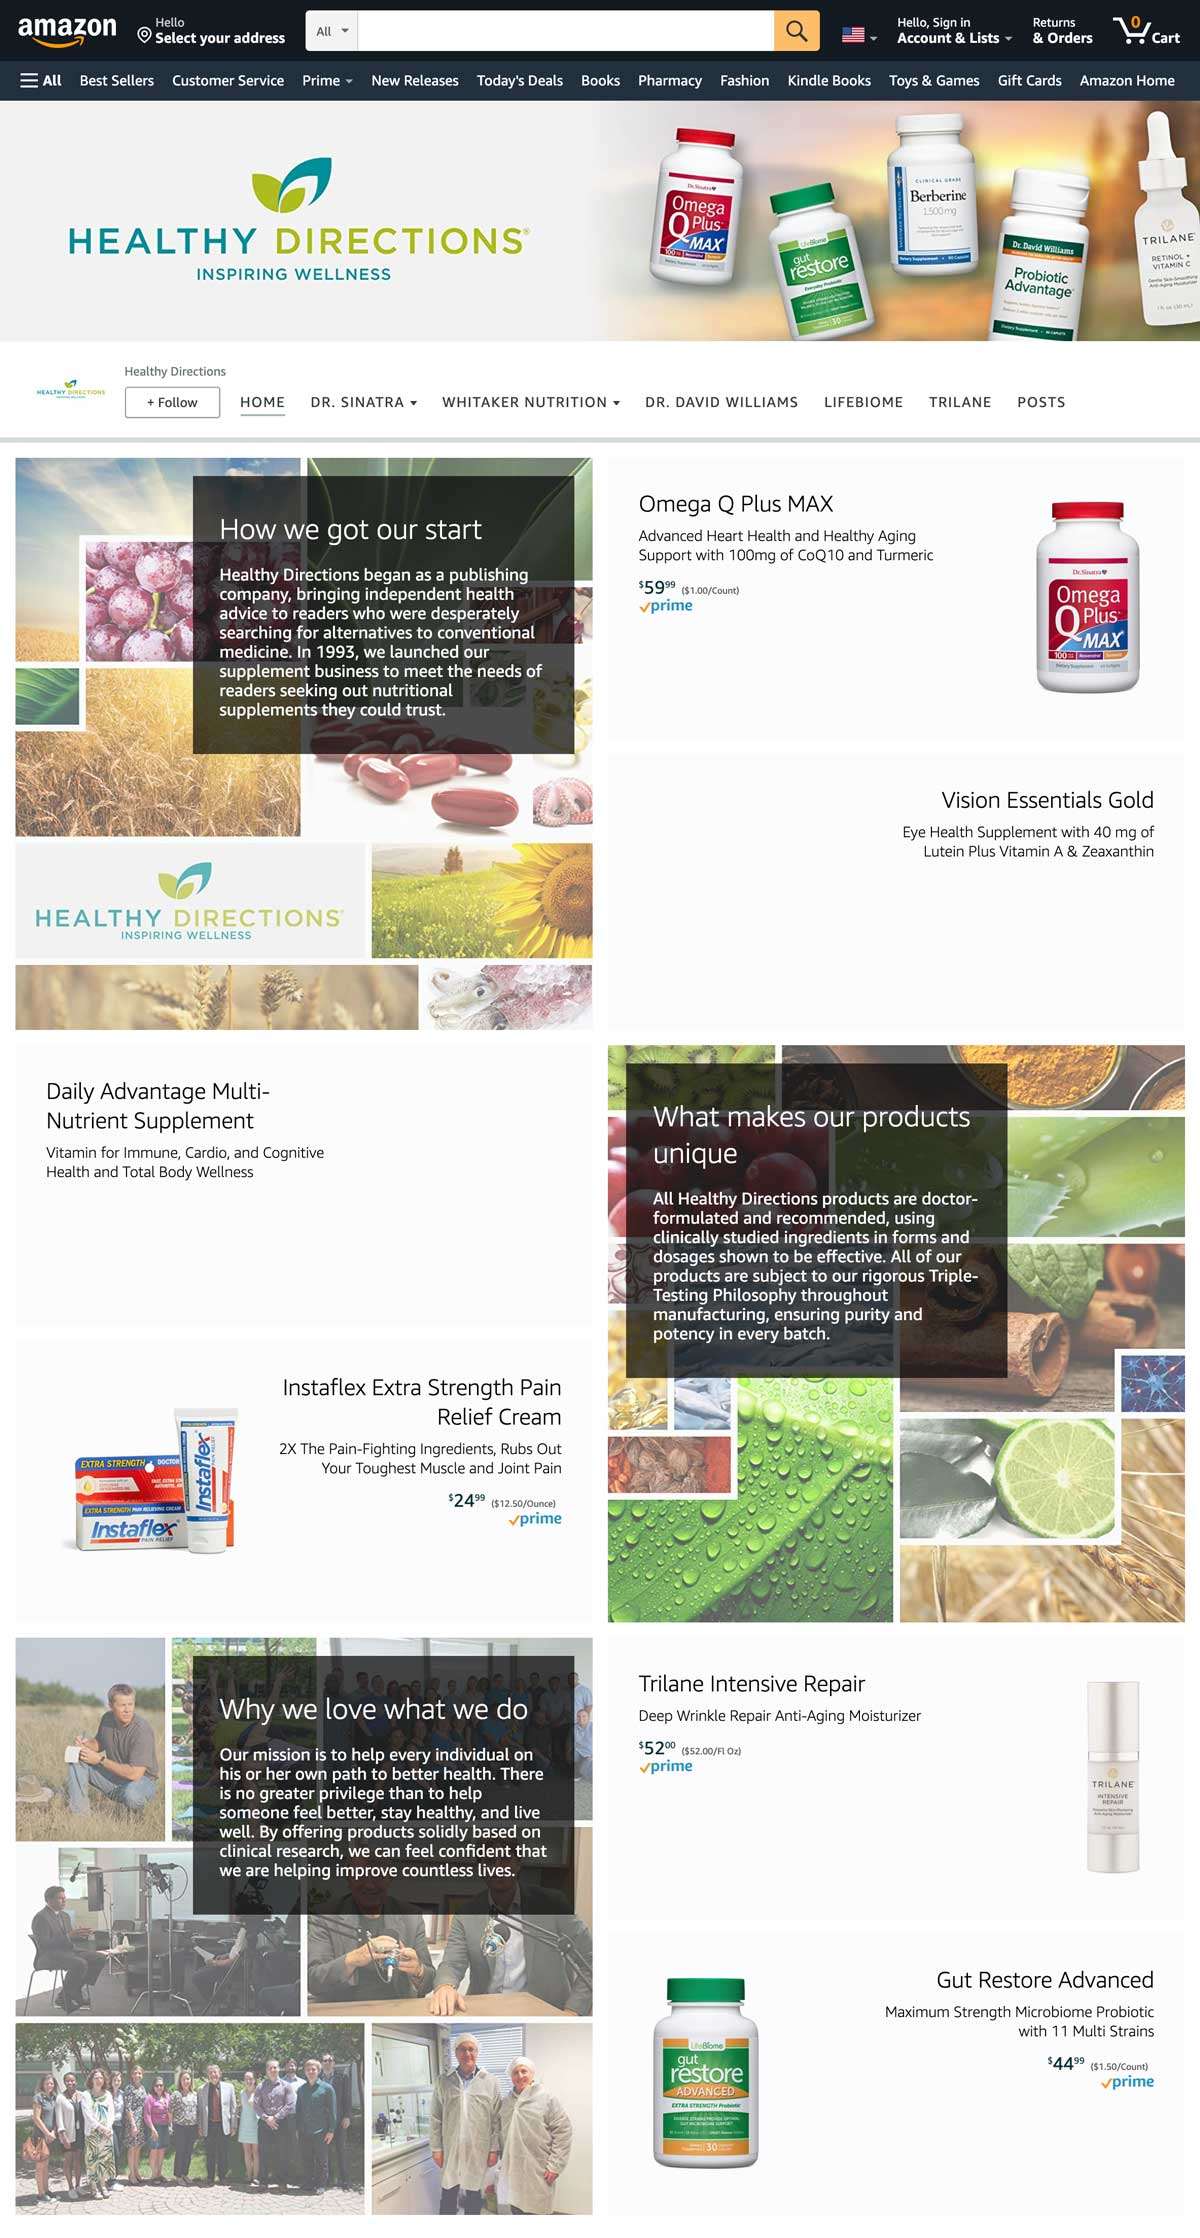 Healthy Directions Amazon storefront Home